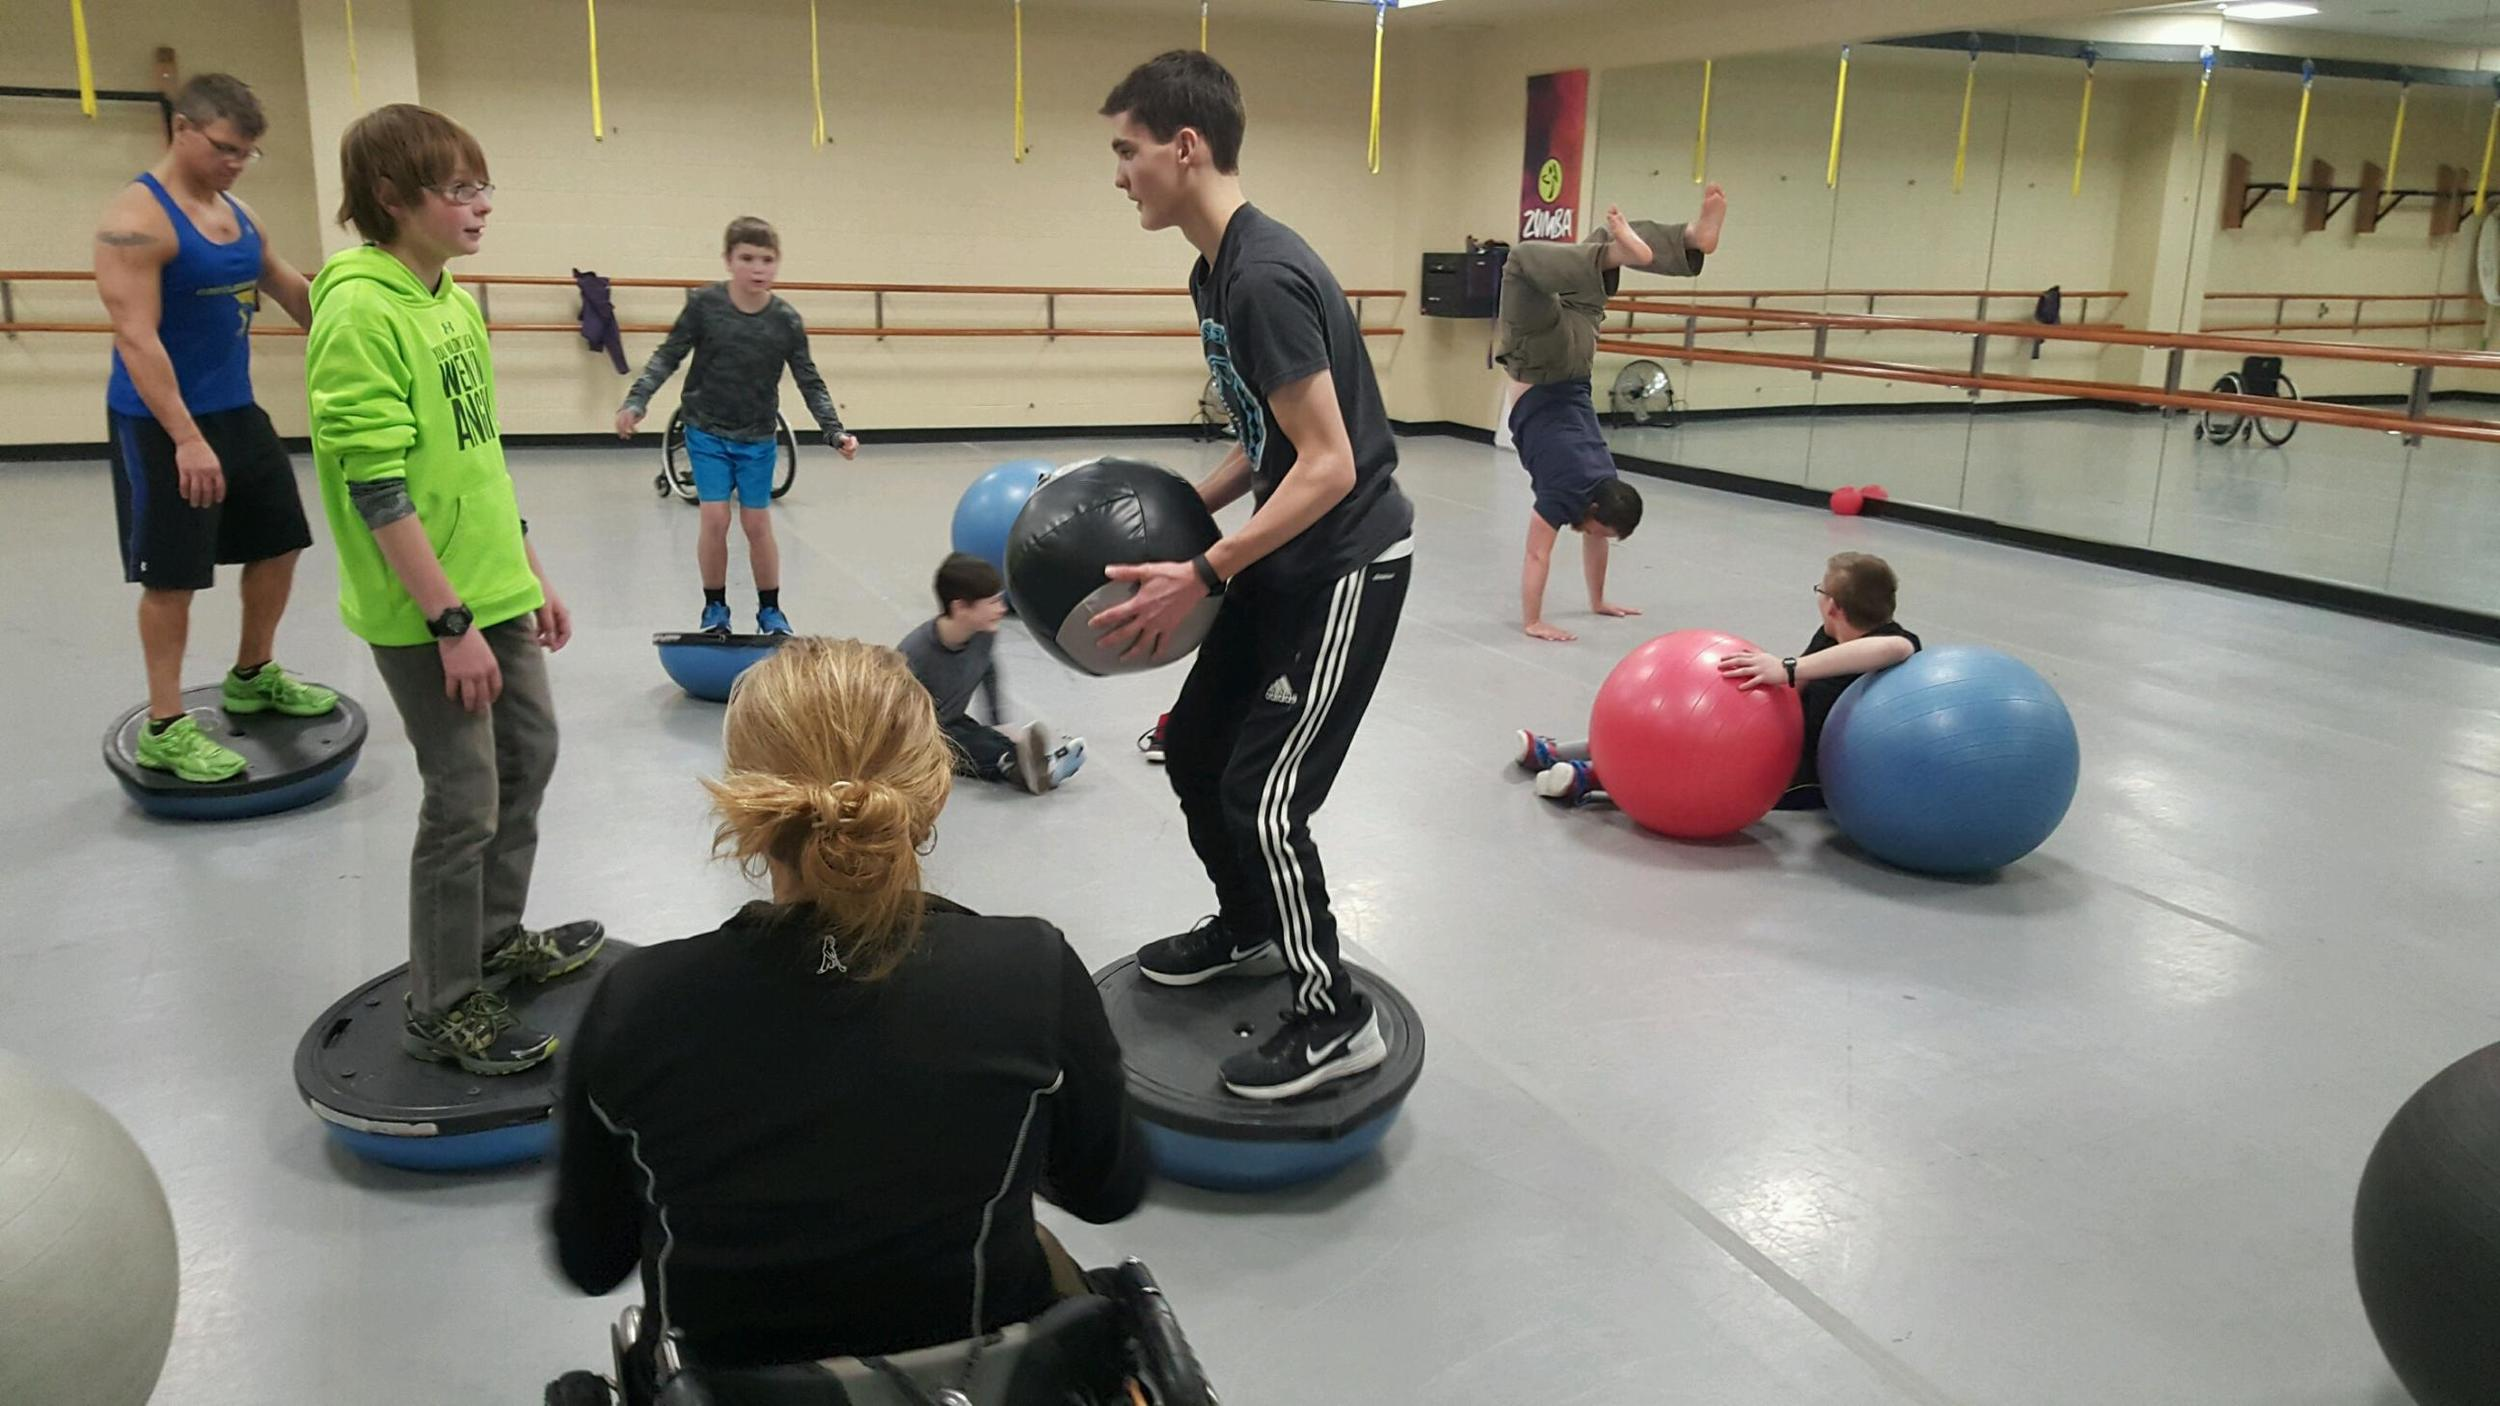 Doing some balance training in the gym with medicine and bosu balls.